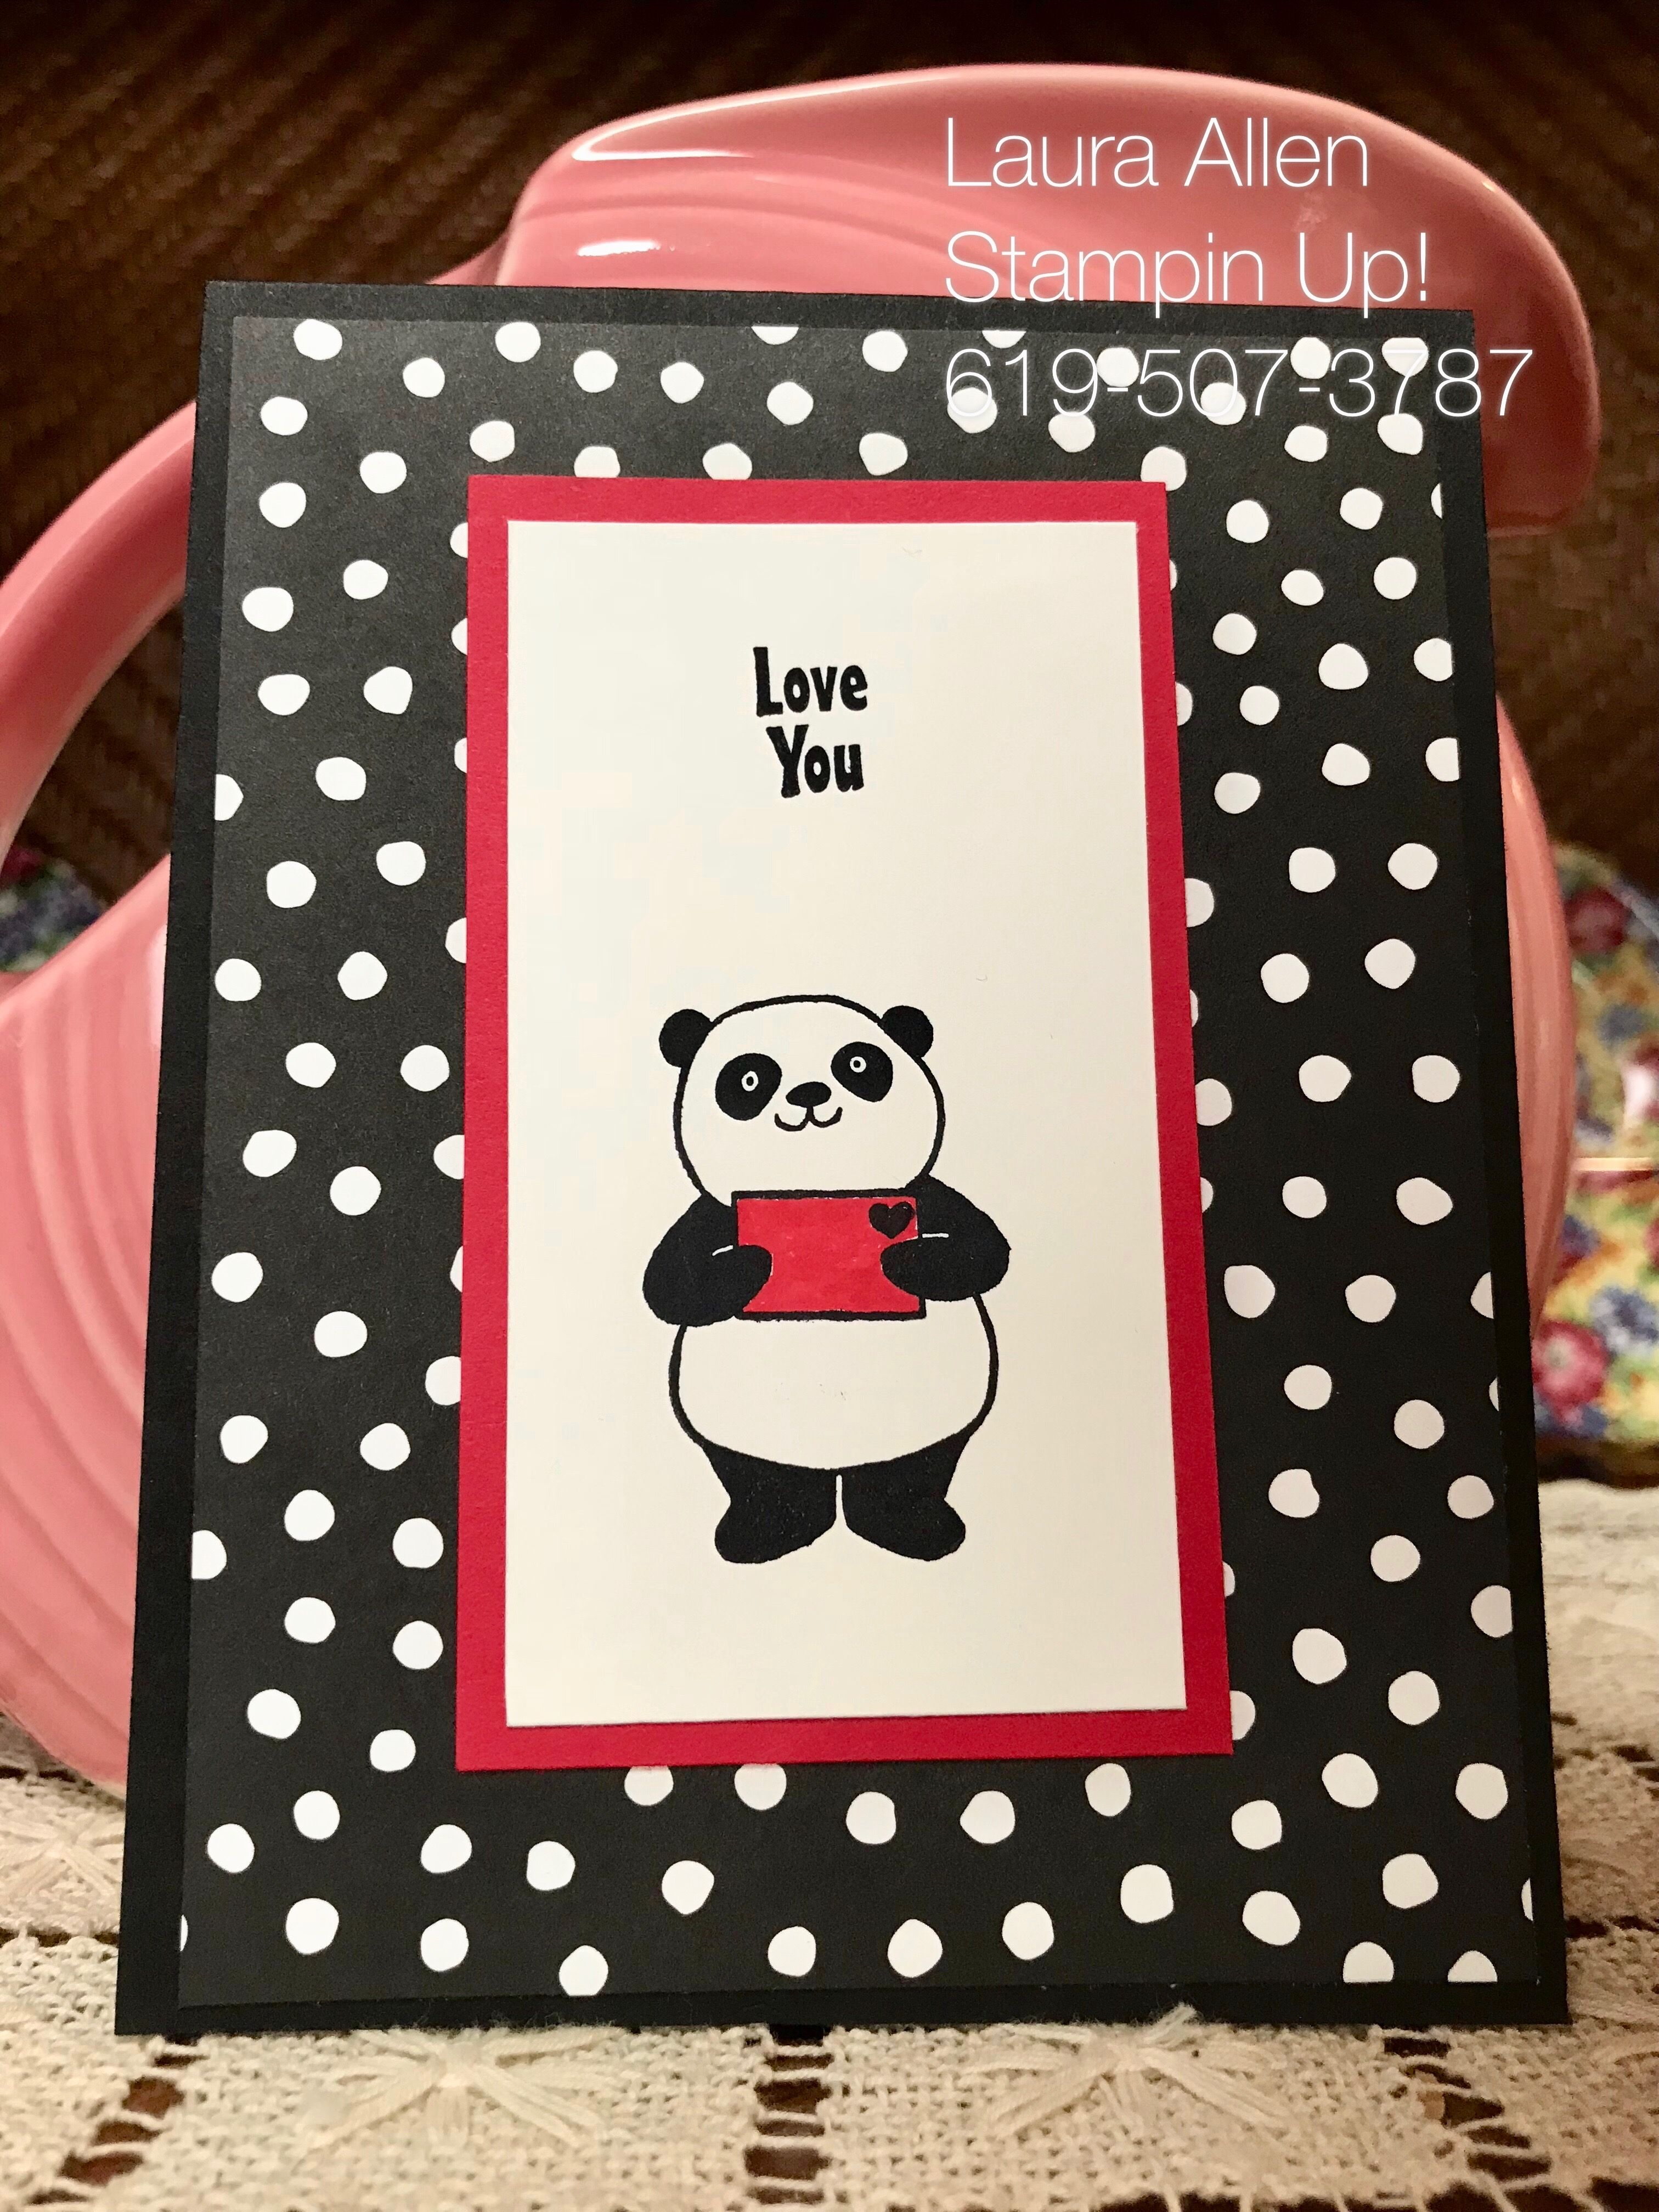 Party Pandas From The Stampin Up Sale A Bration Catalog January 3rd